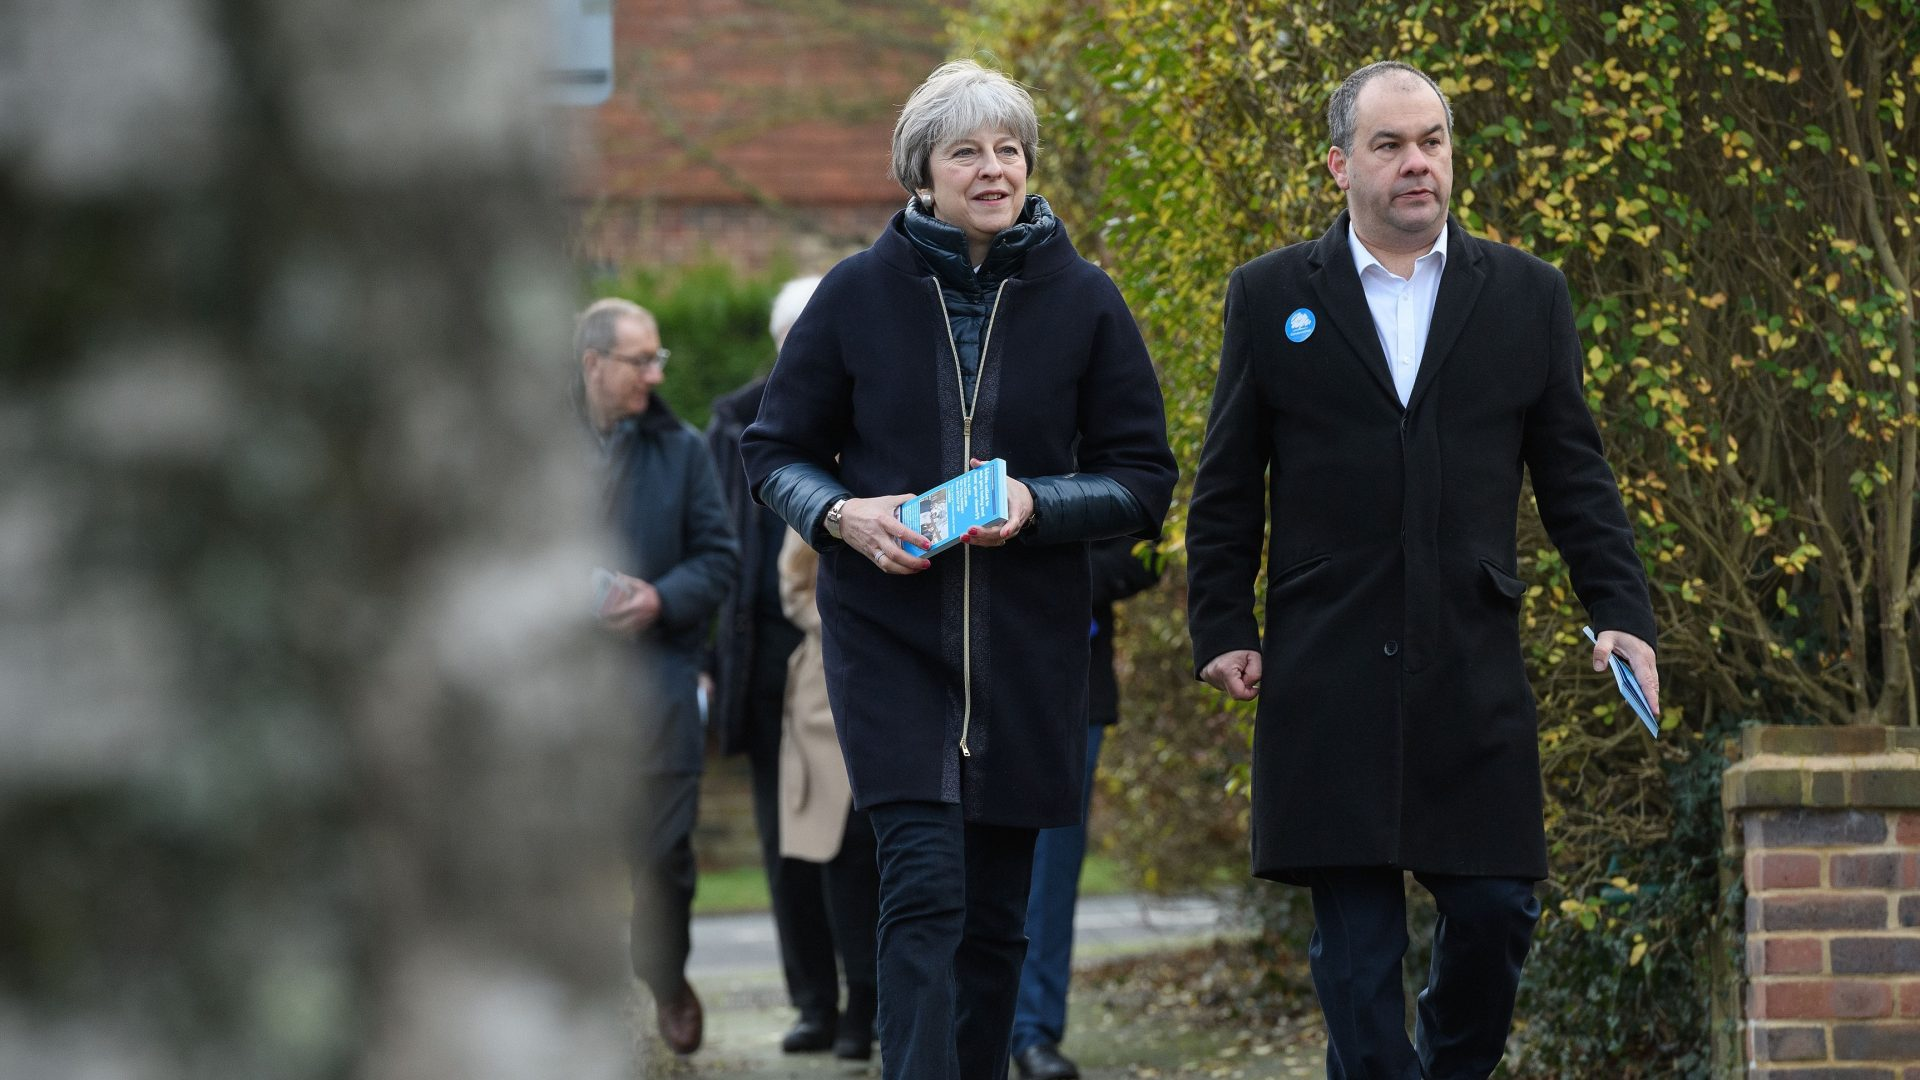 Theresa May campaigning in south-west London with MP for Sutton and Cheam Paul Scully (Leon Neal/PA)